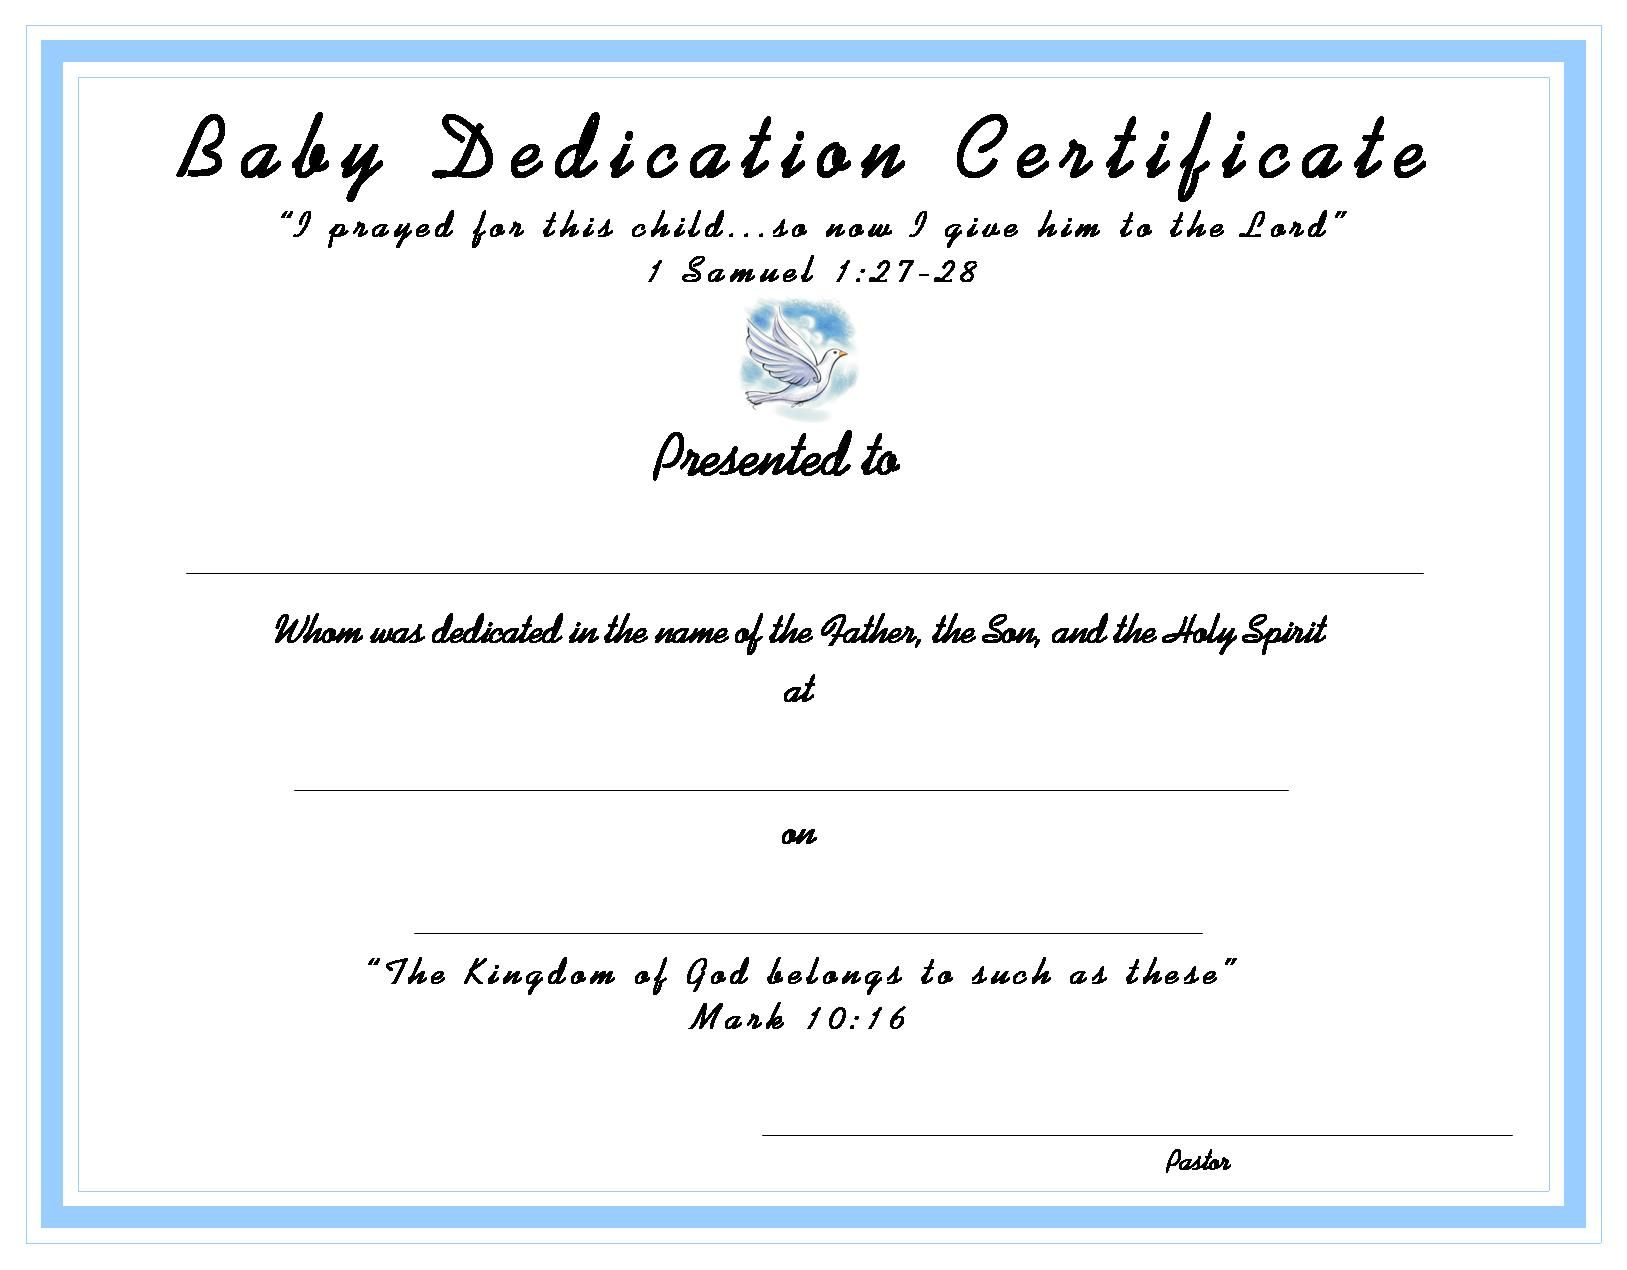 www.certificatetemplate.org-Baby Dedication Certificate for your ...